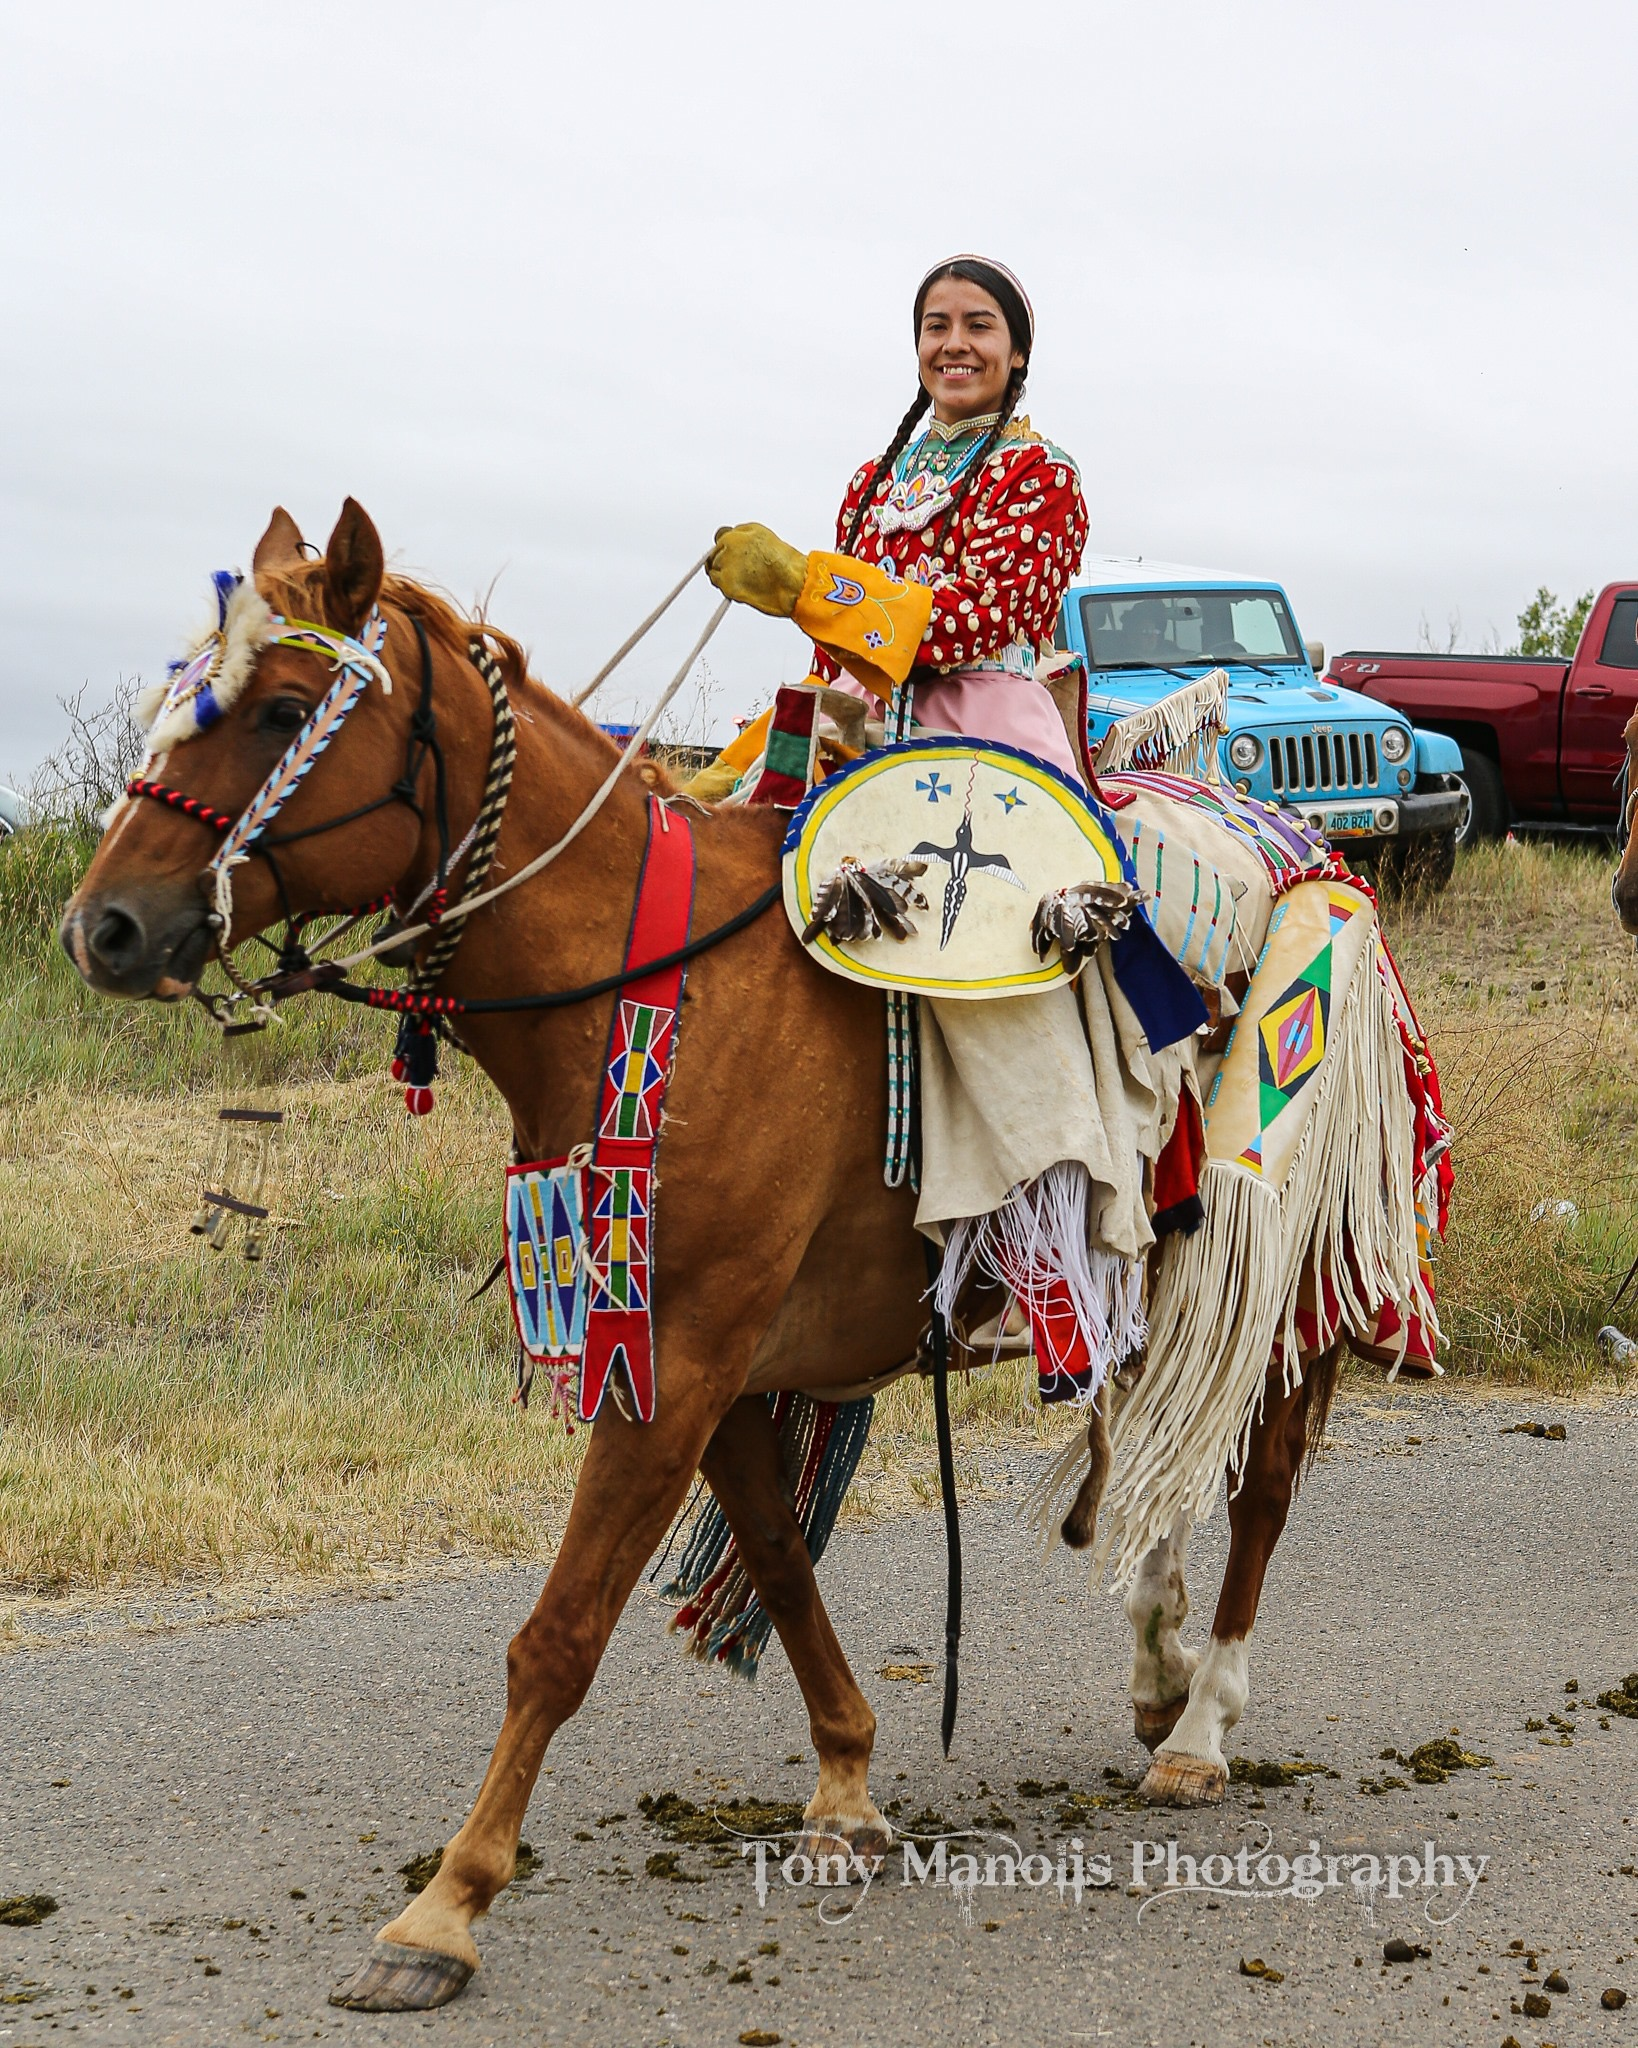 Caption: Picture 3: Photo taken during the parade at my tribe's annual celebration, Crow Fair, in 2019. (PC: Tony Manolis Photography).